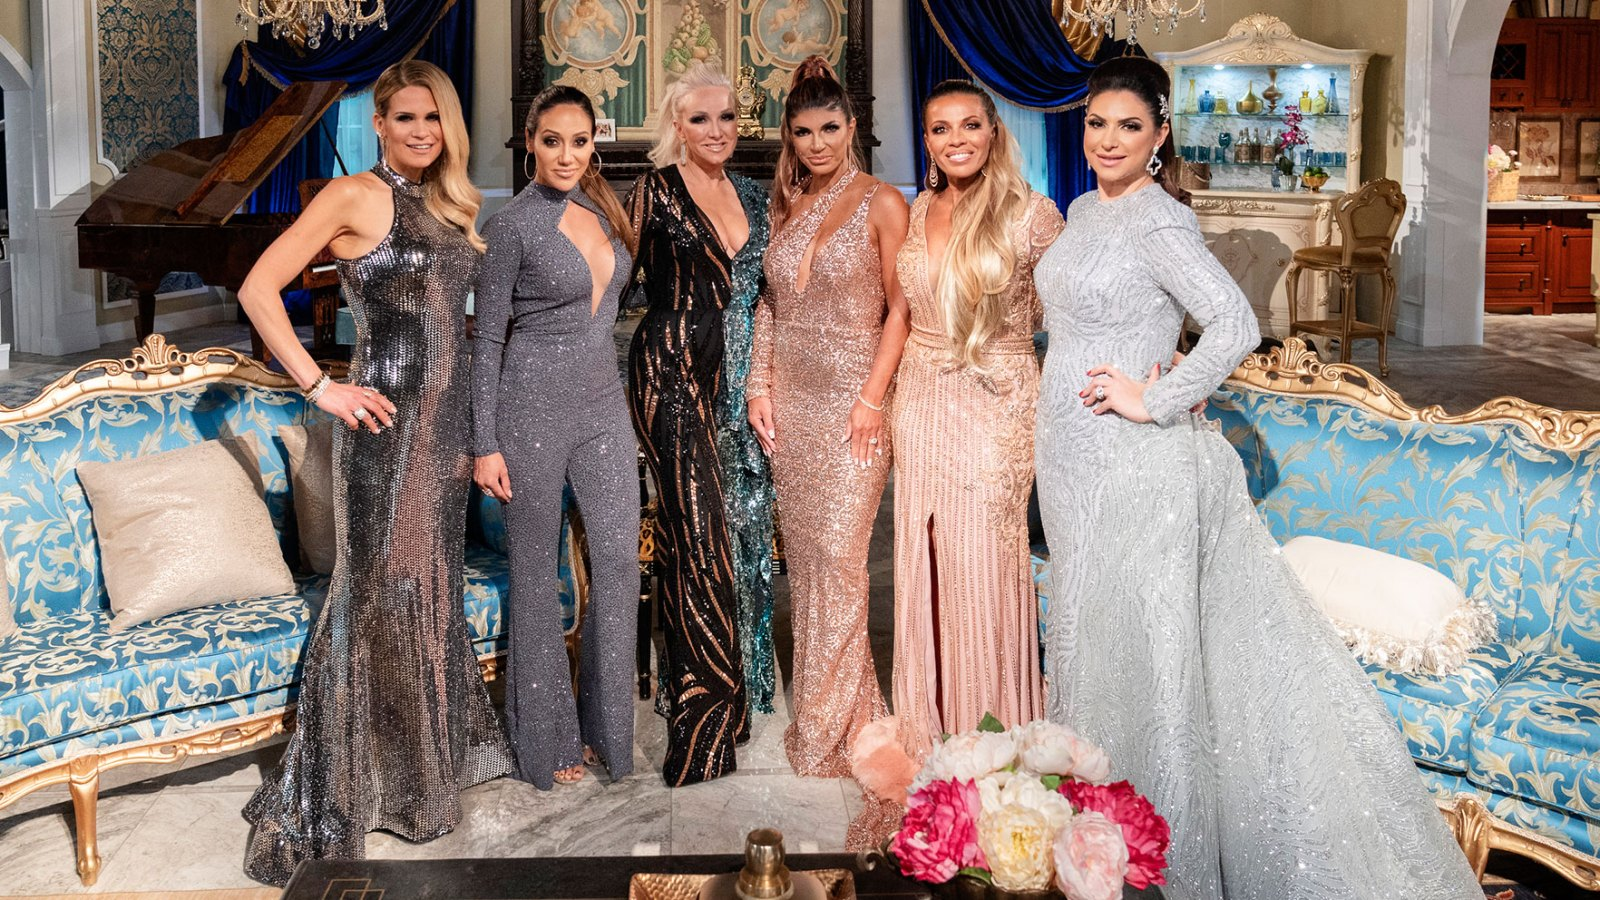 760f4ea04 Find Out Who's Returning for Season 10 of 'RHONJ'